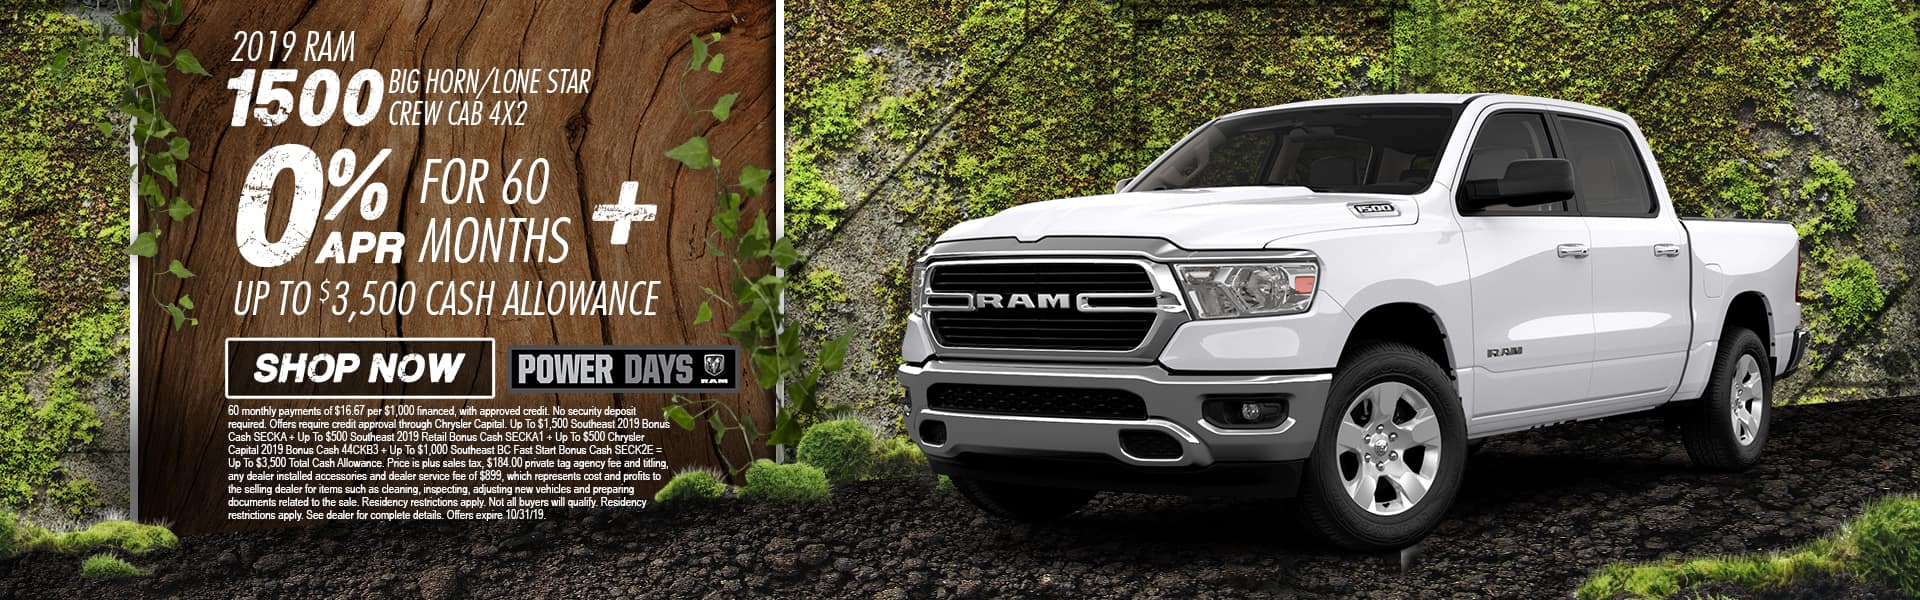 2019 RAM 1500 Big Horn/Lone Star Crew Cab 4x2 | 0% APR For 60 Months + Up To $3,500 Cash Allowance